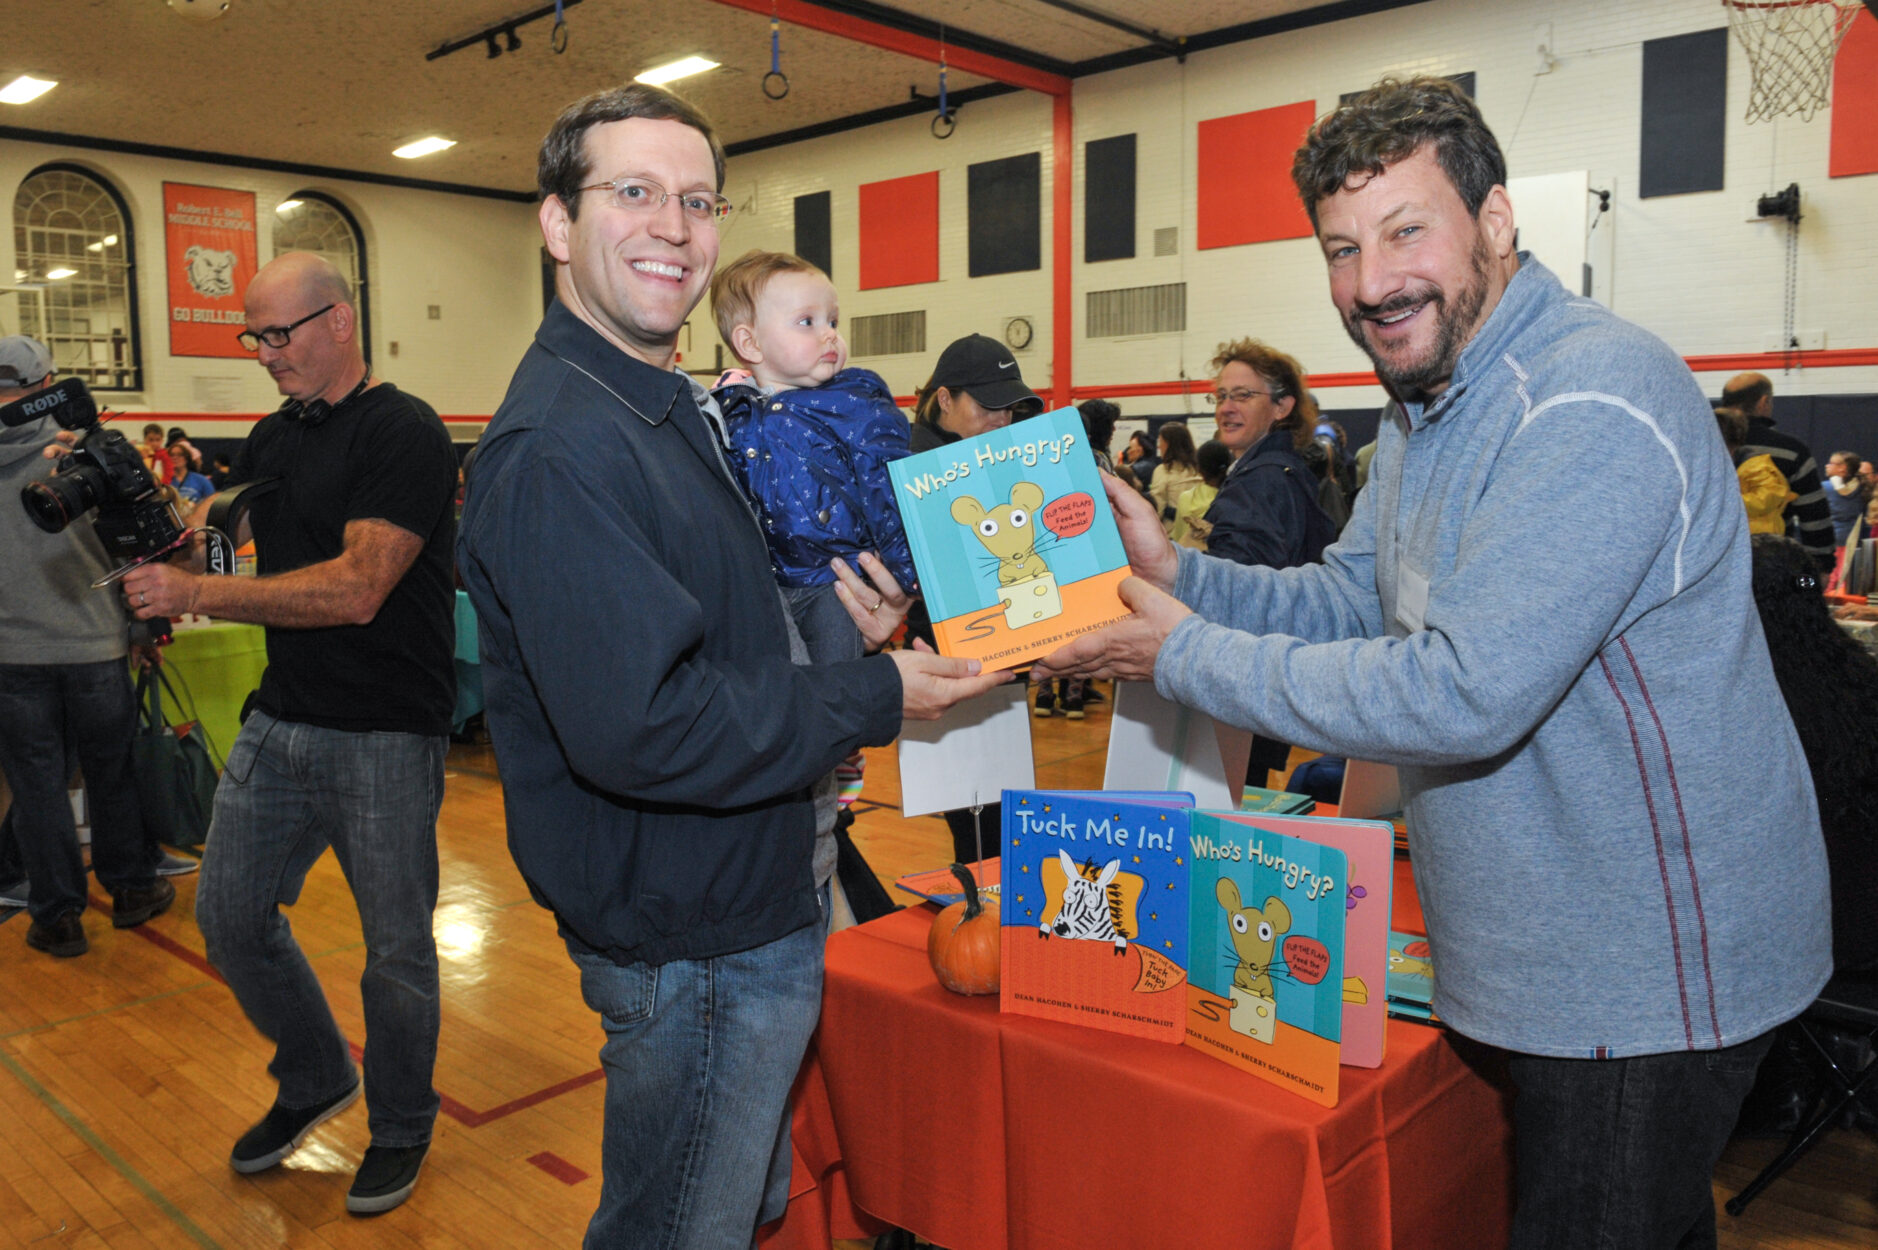 Chappaqua Children's Book Festival Brings 90 Authors and Illustrators to Westchester County for the 4th Year in a Row